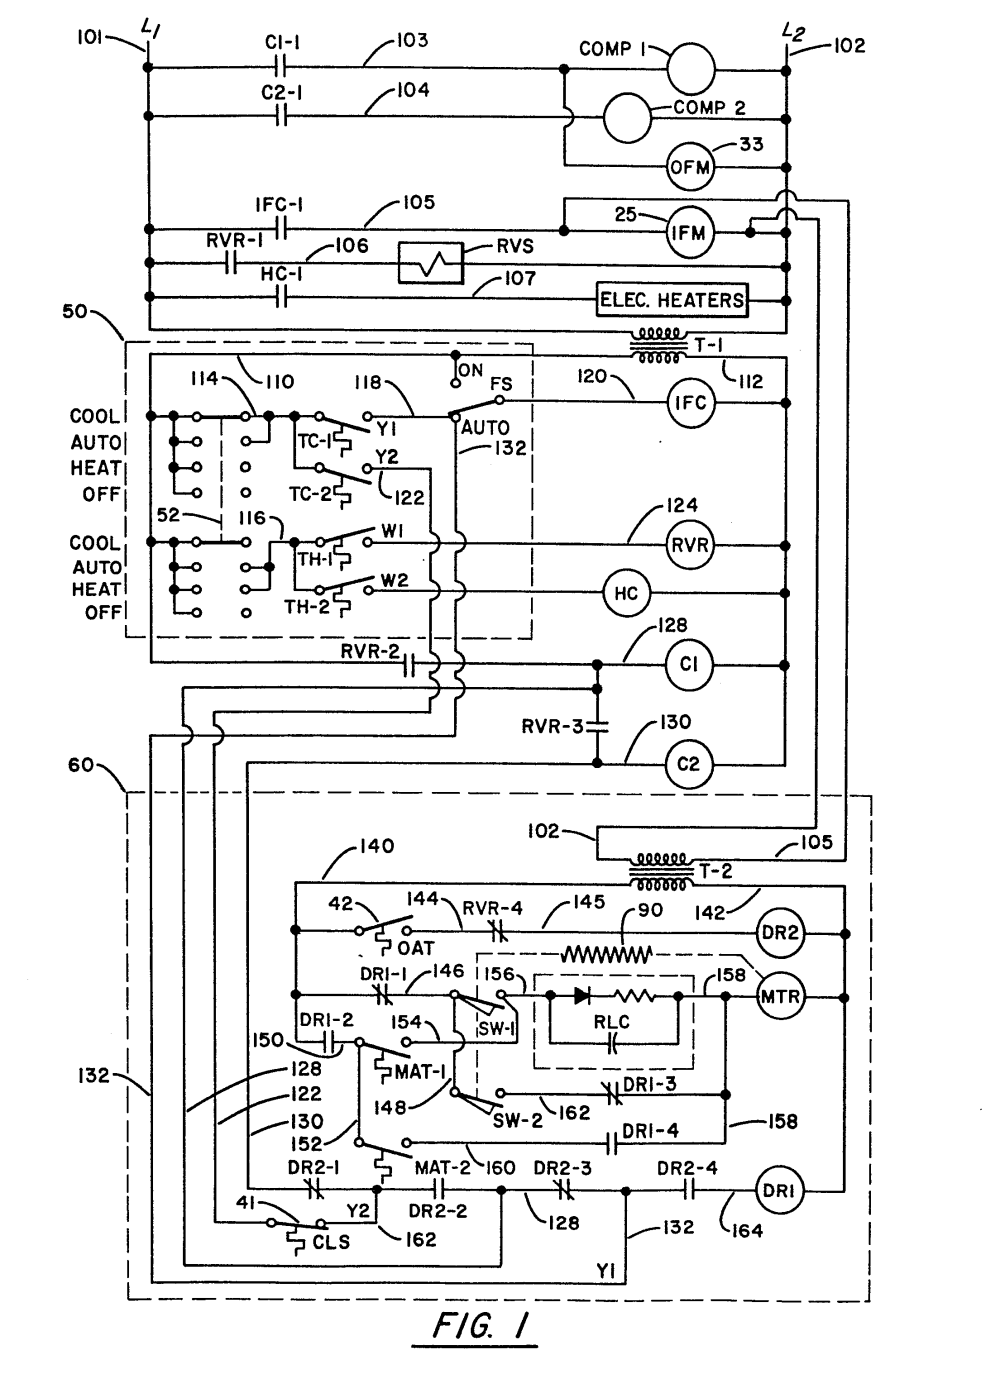 medium resolution of aaon wiring schematics wiring diagram condensing unit diagram aaon wiring diagrams